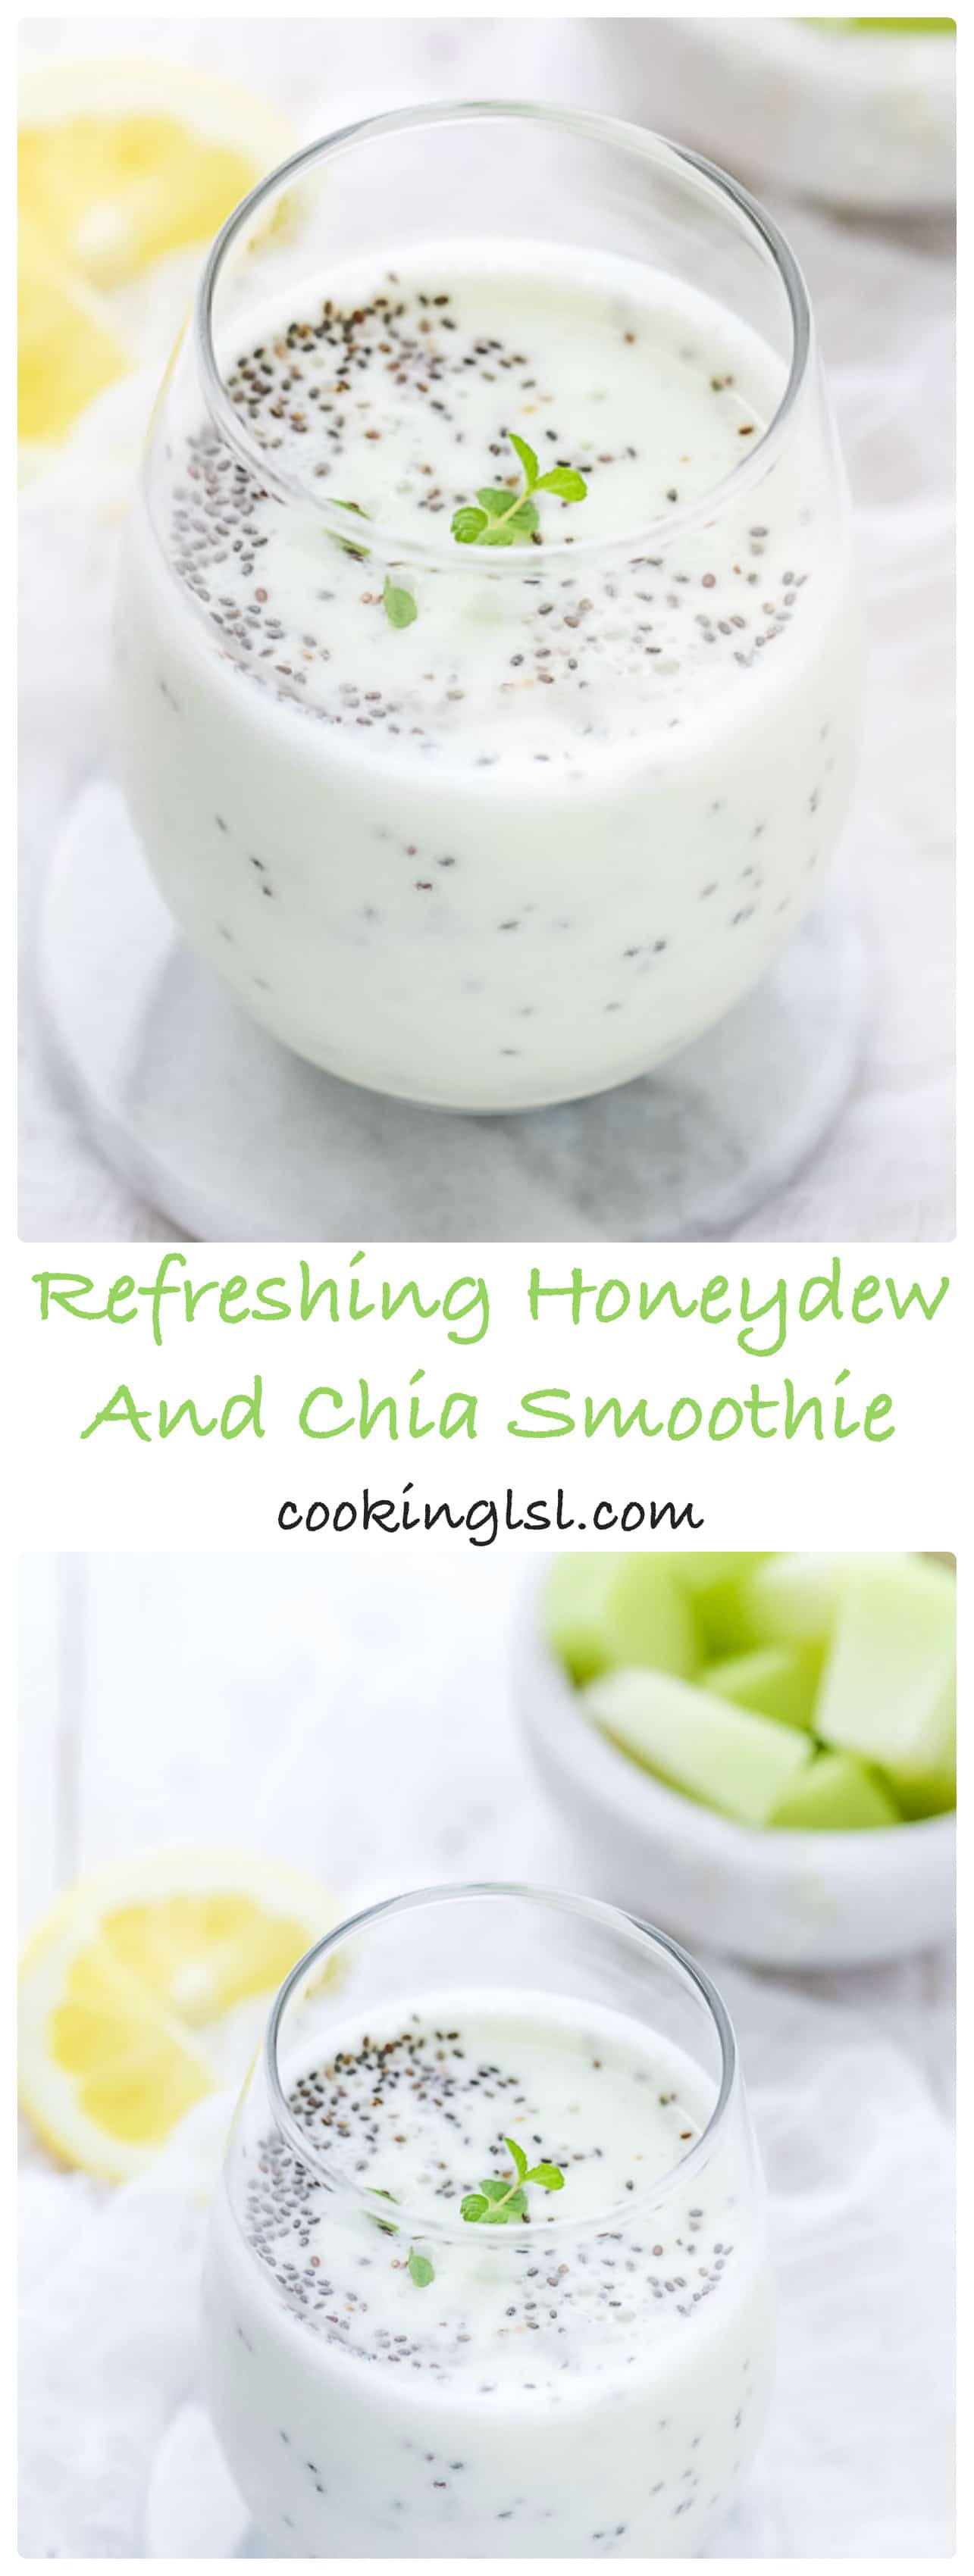 Healthy and Delicious Summer Favorite Refreshing Honeydew And Chia Smoothie